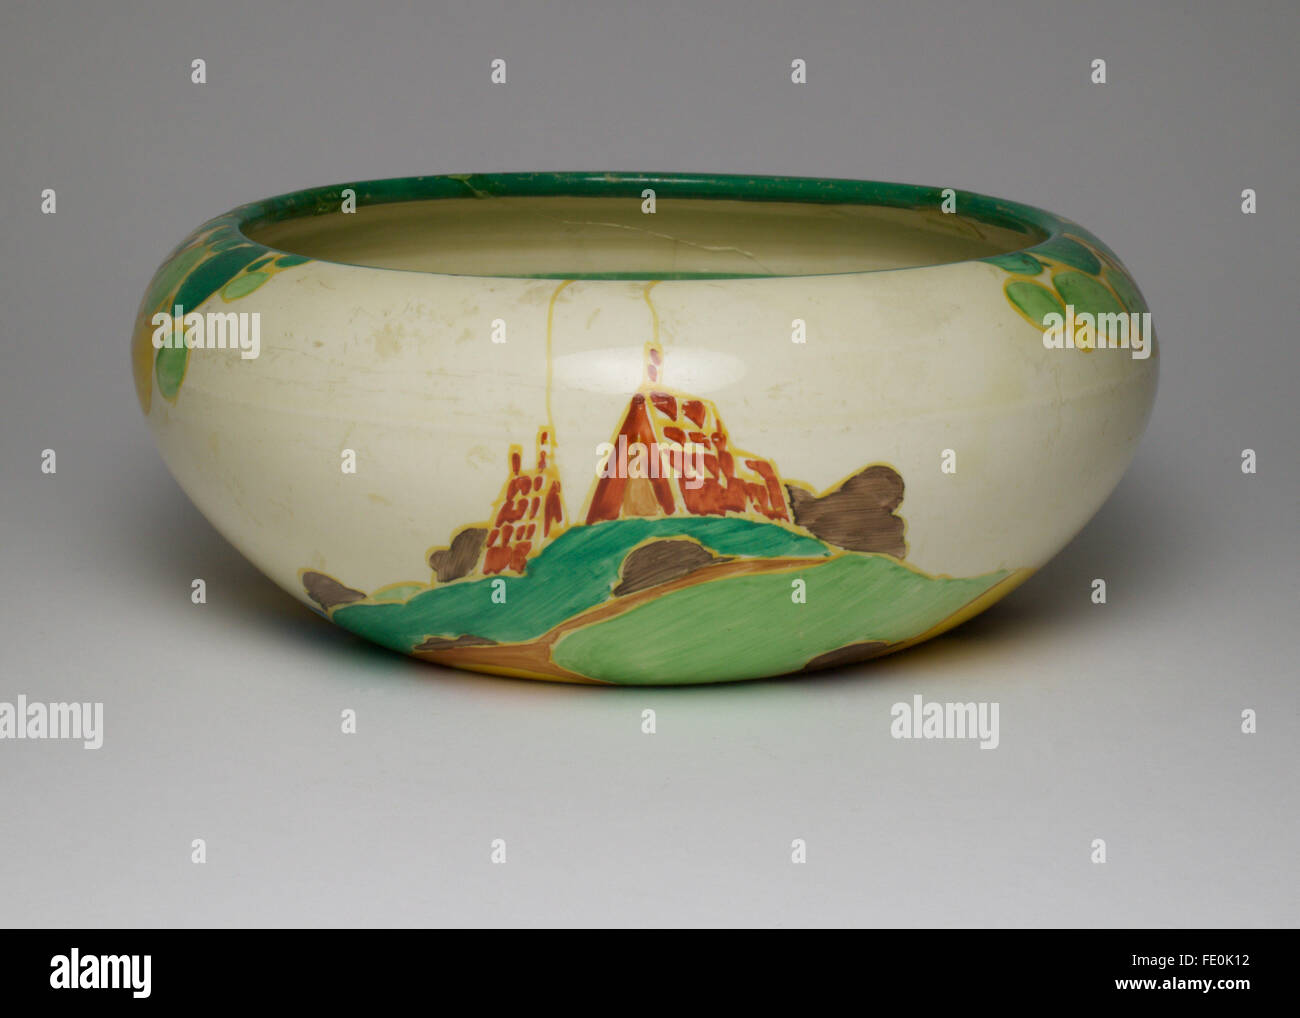 Art Deco Clarice Cliff Secrets pattern bowl. The bowl measures approximately 20cm in diameter and is 7.5cm high. Stock Photo